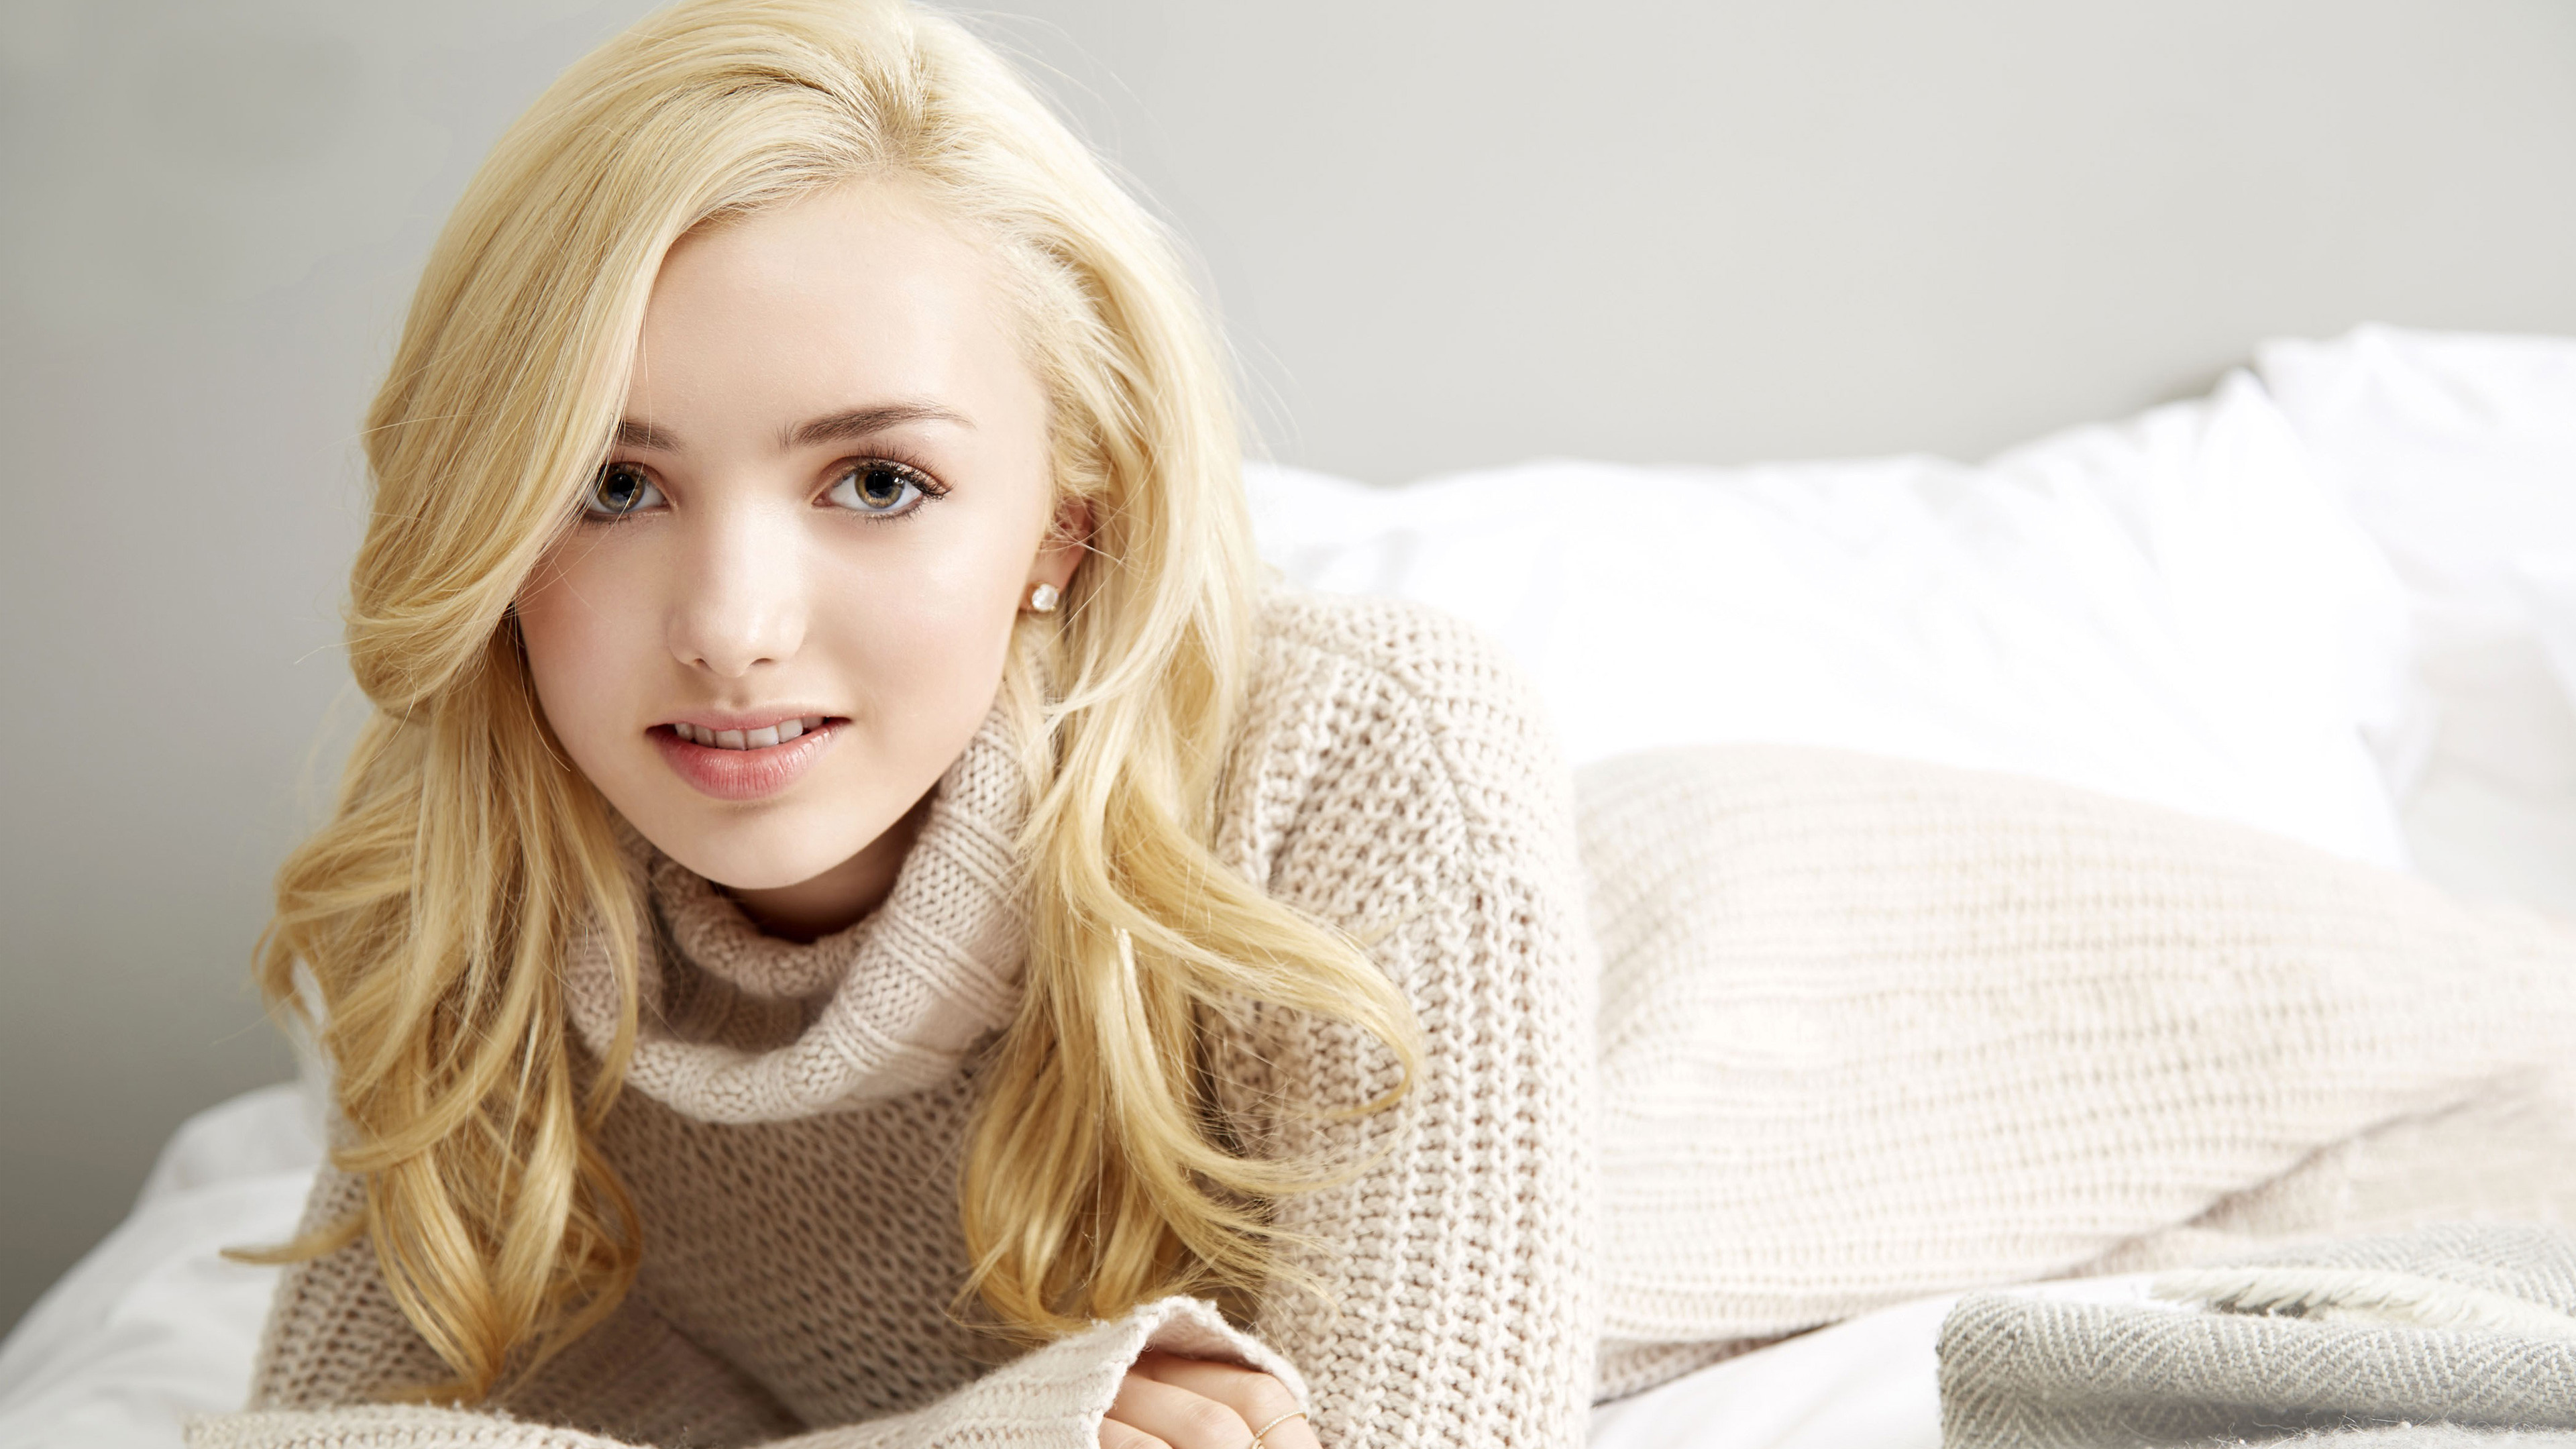 Peyton List - Bio, Facts & Family Life of The Actress